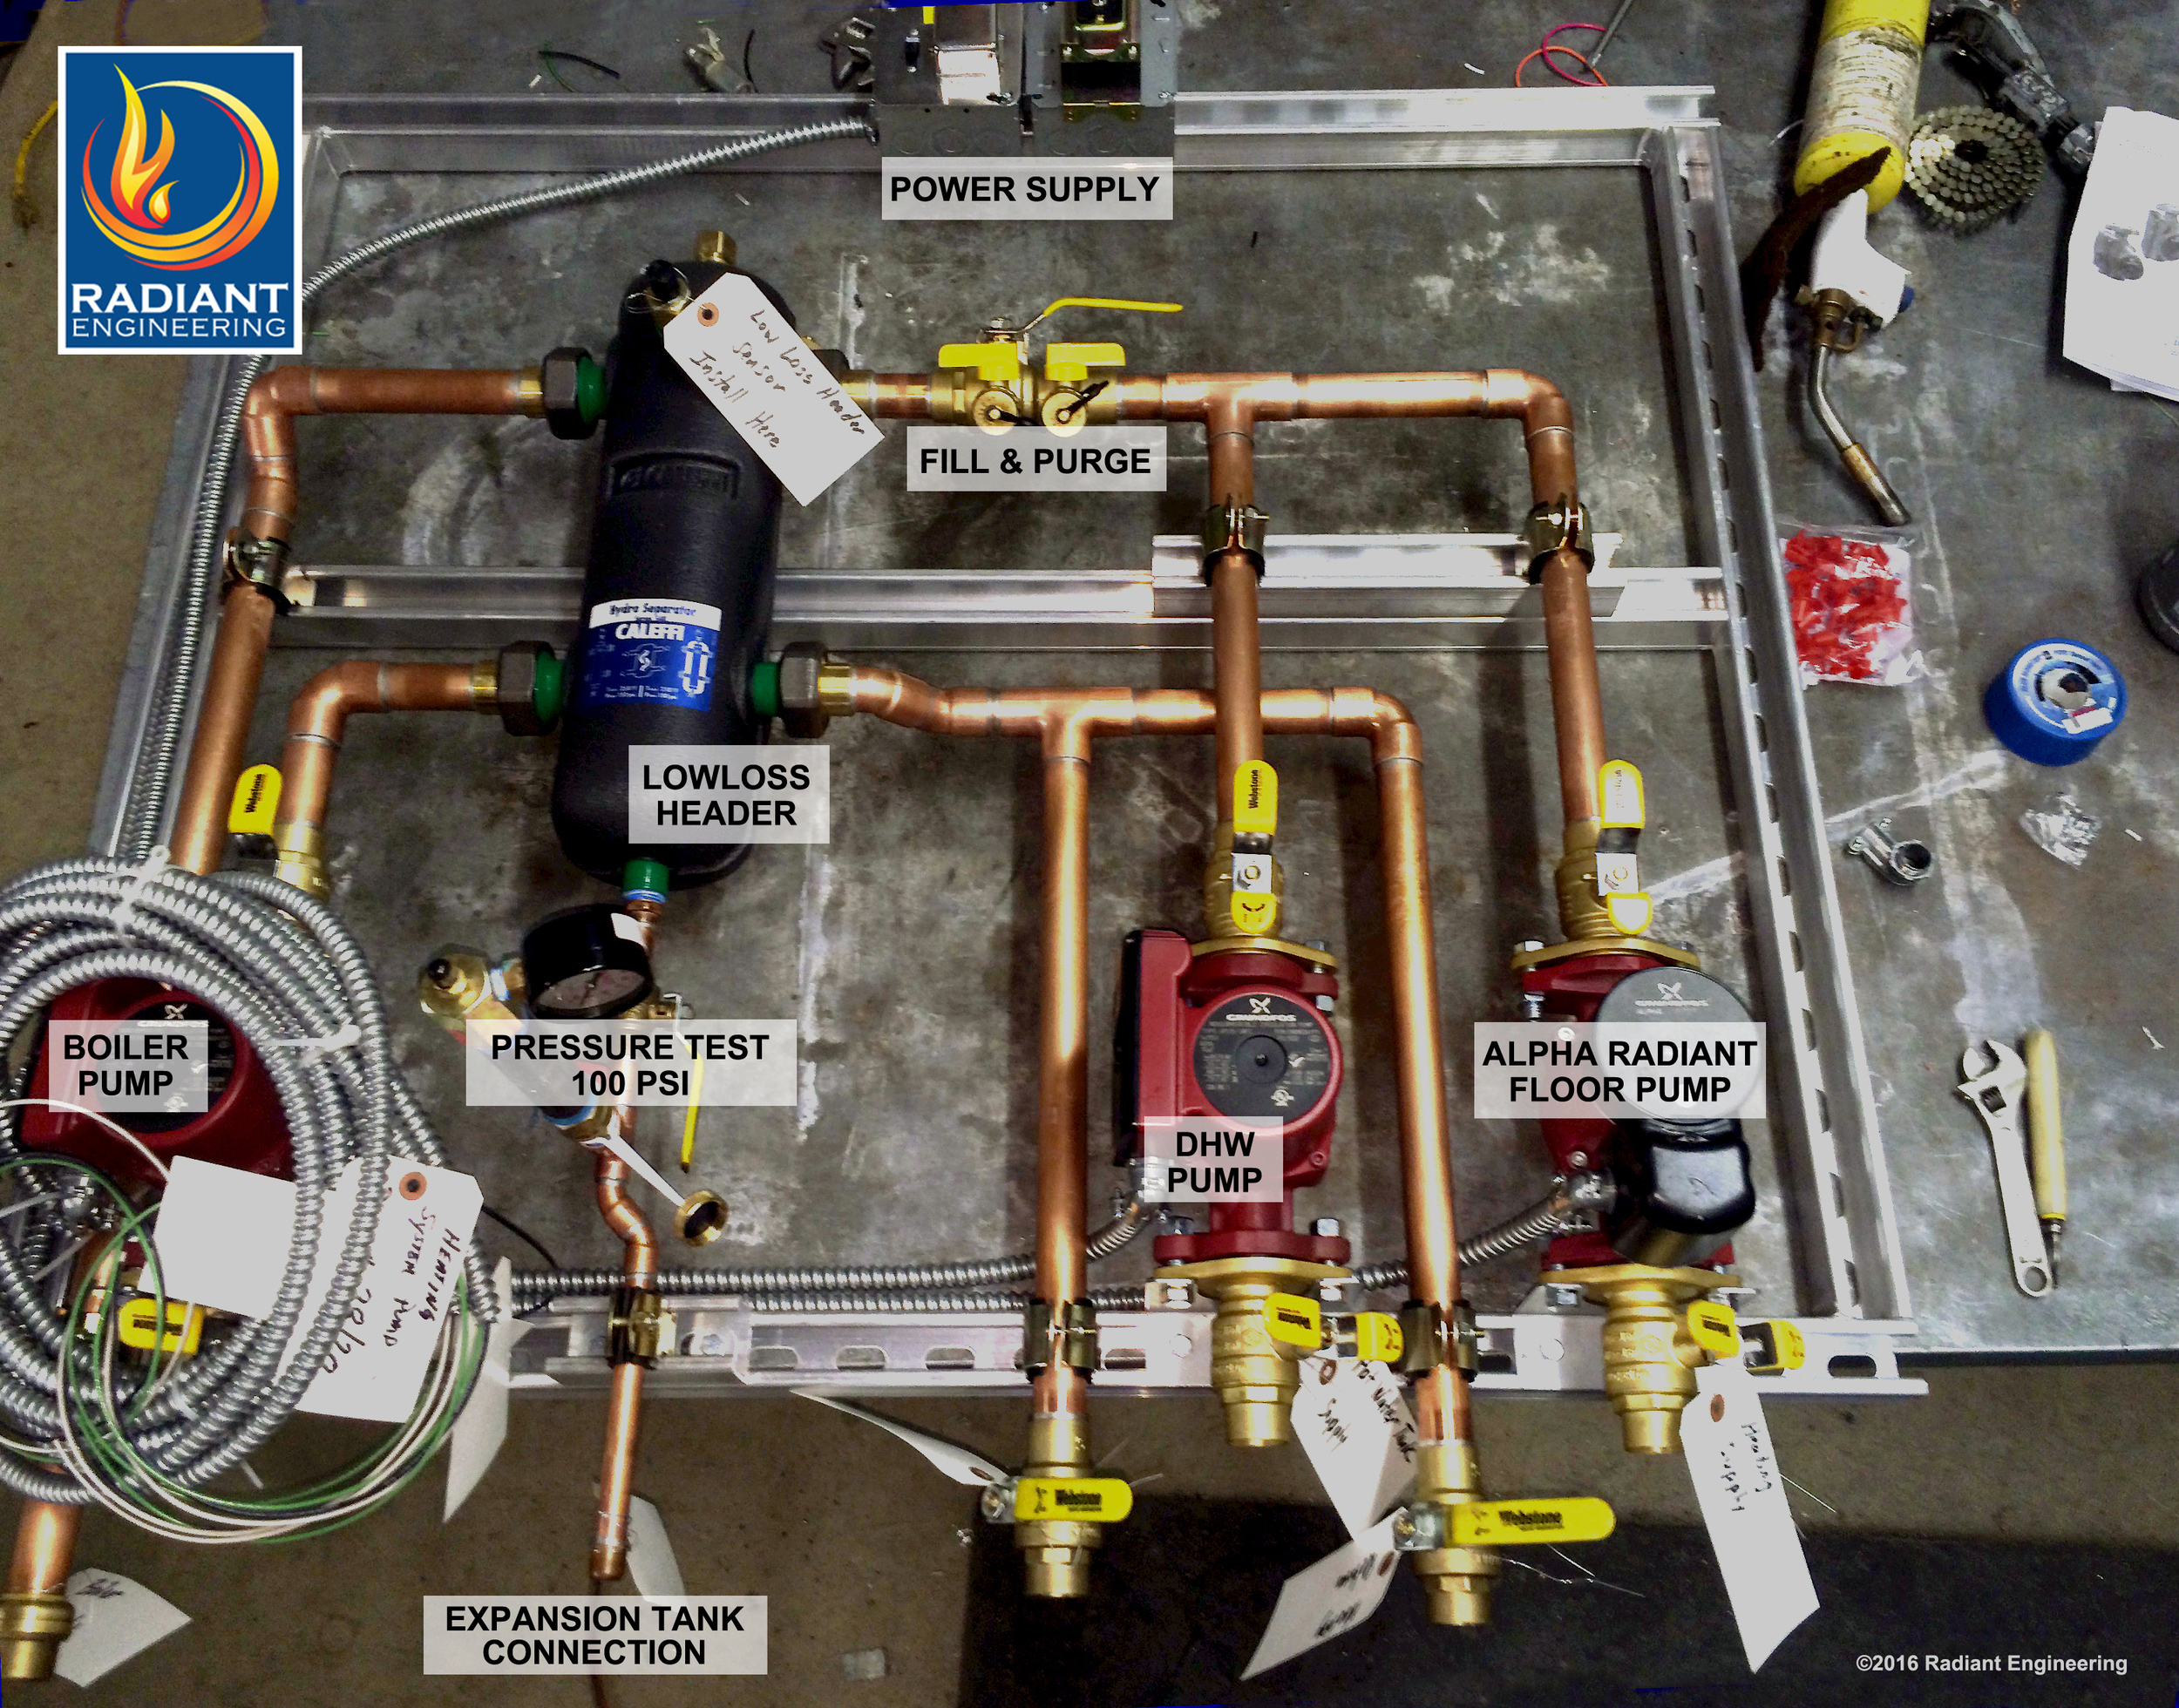 Custom hydronic system buildup pre-fabrication for Vitodens-200 by Radiant Design & Supply